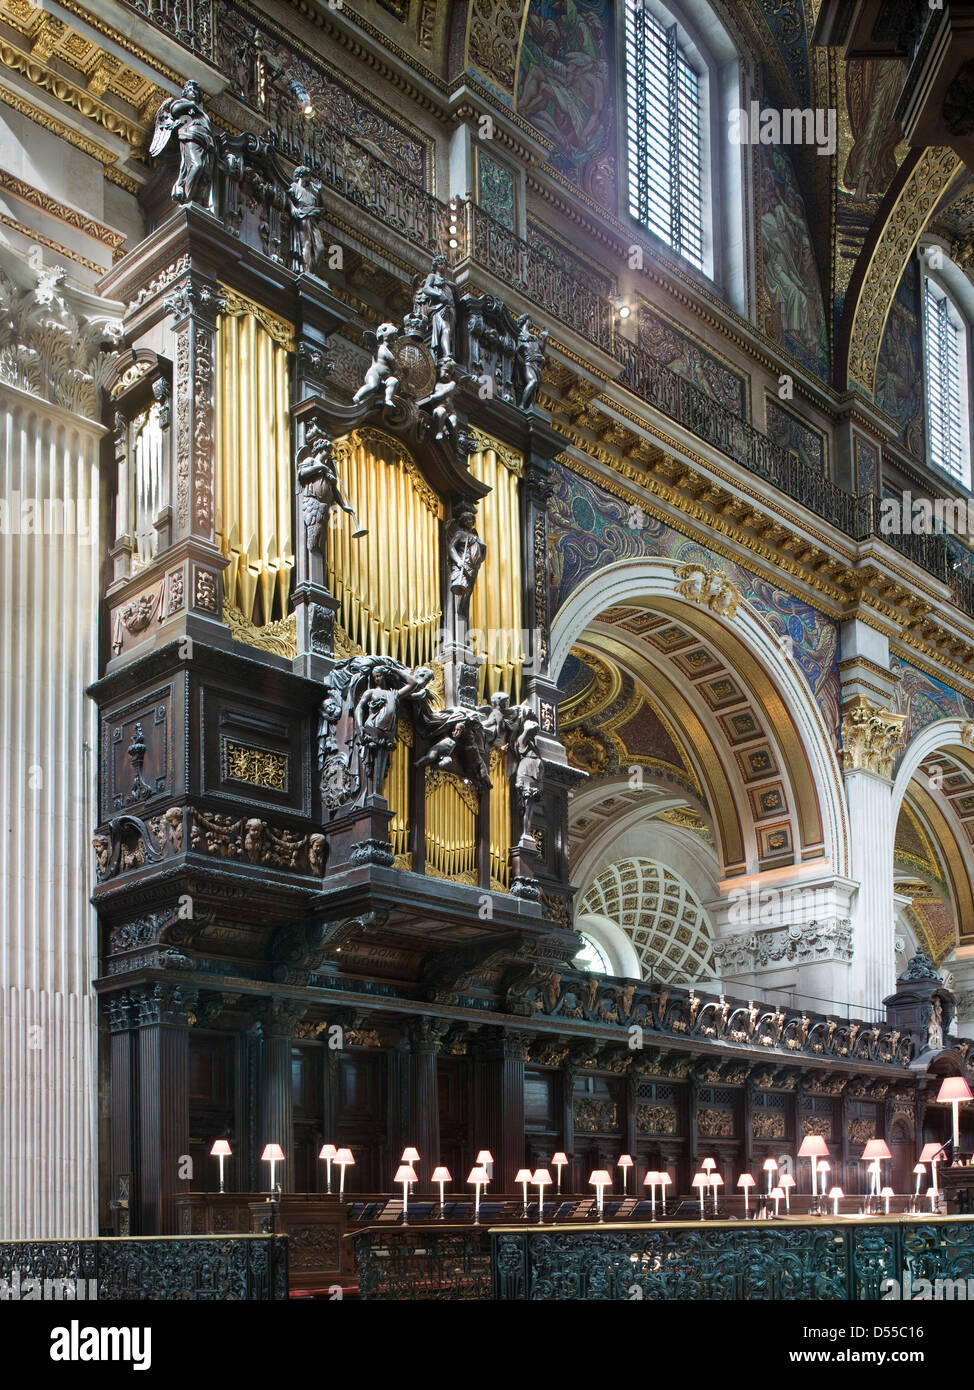 St Paul's Cathedral Organ case and choir stalls - Stock Image